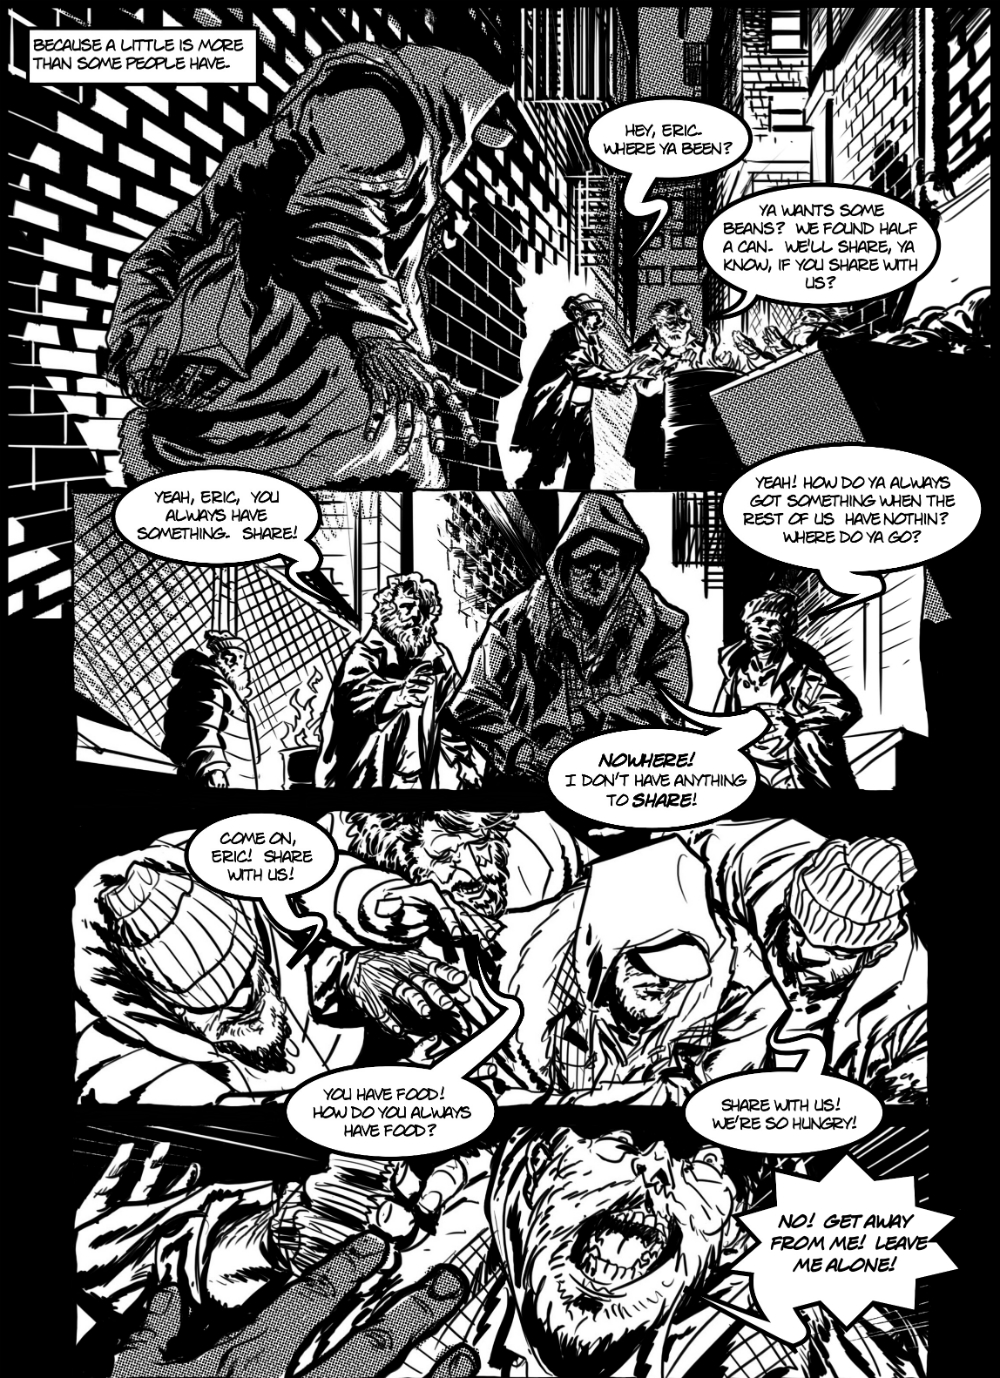 FILLINGS page 2 - story 6